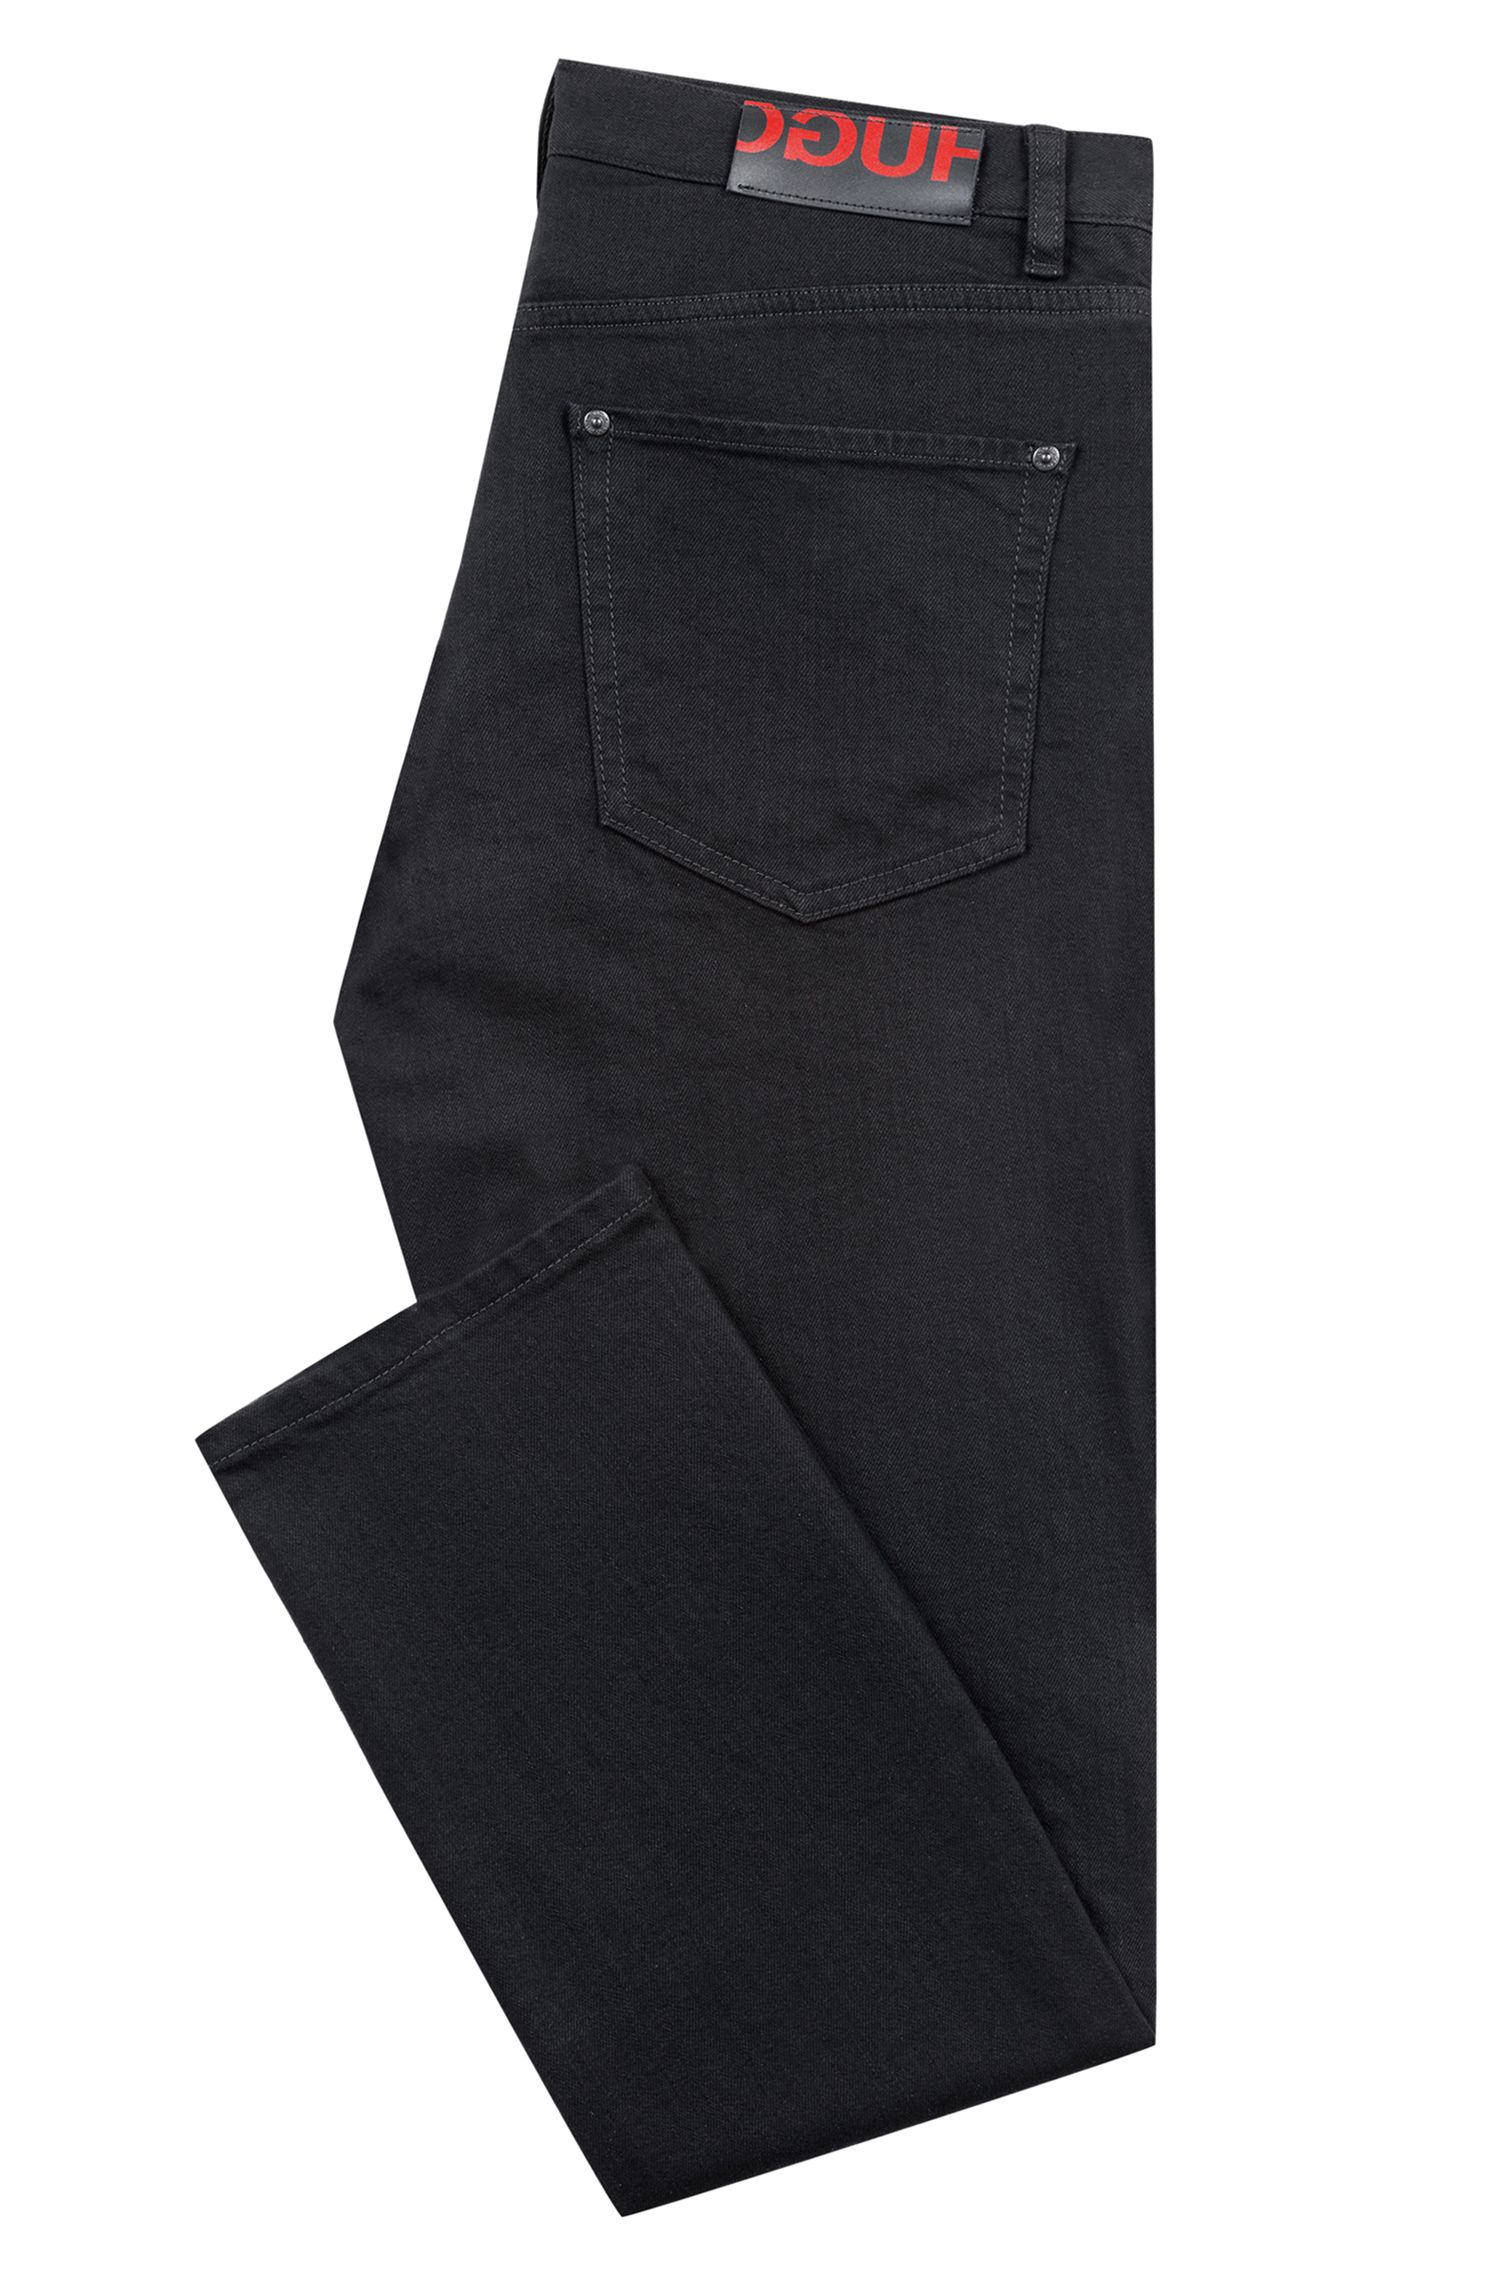 Straight-leg jeans in soft-washed black stretch denim